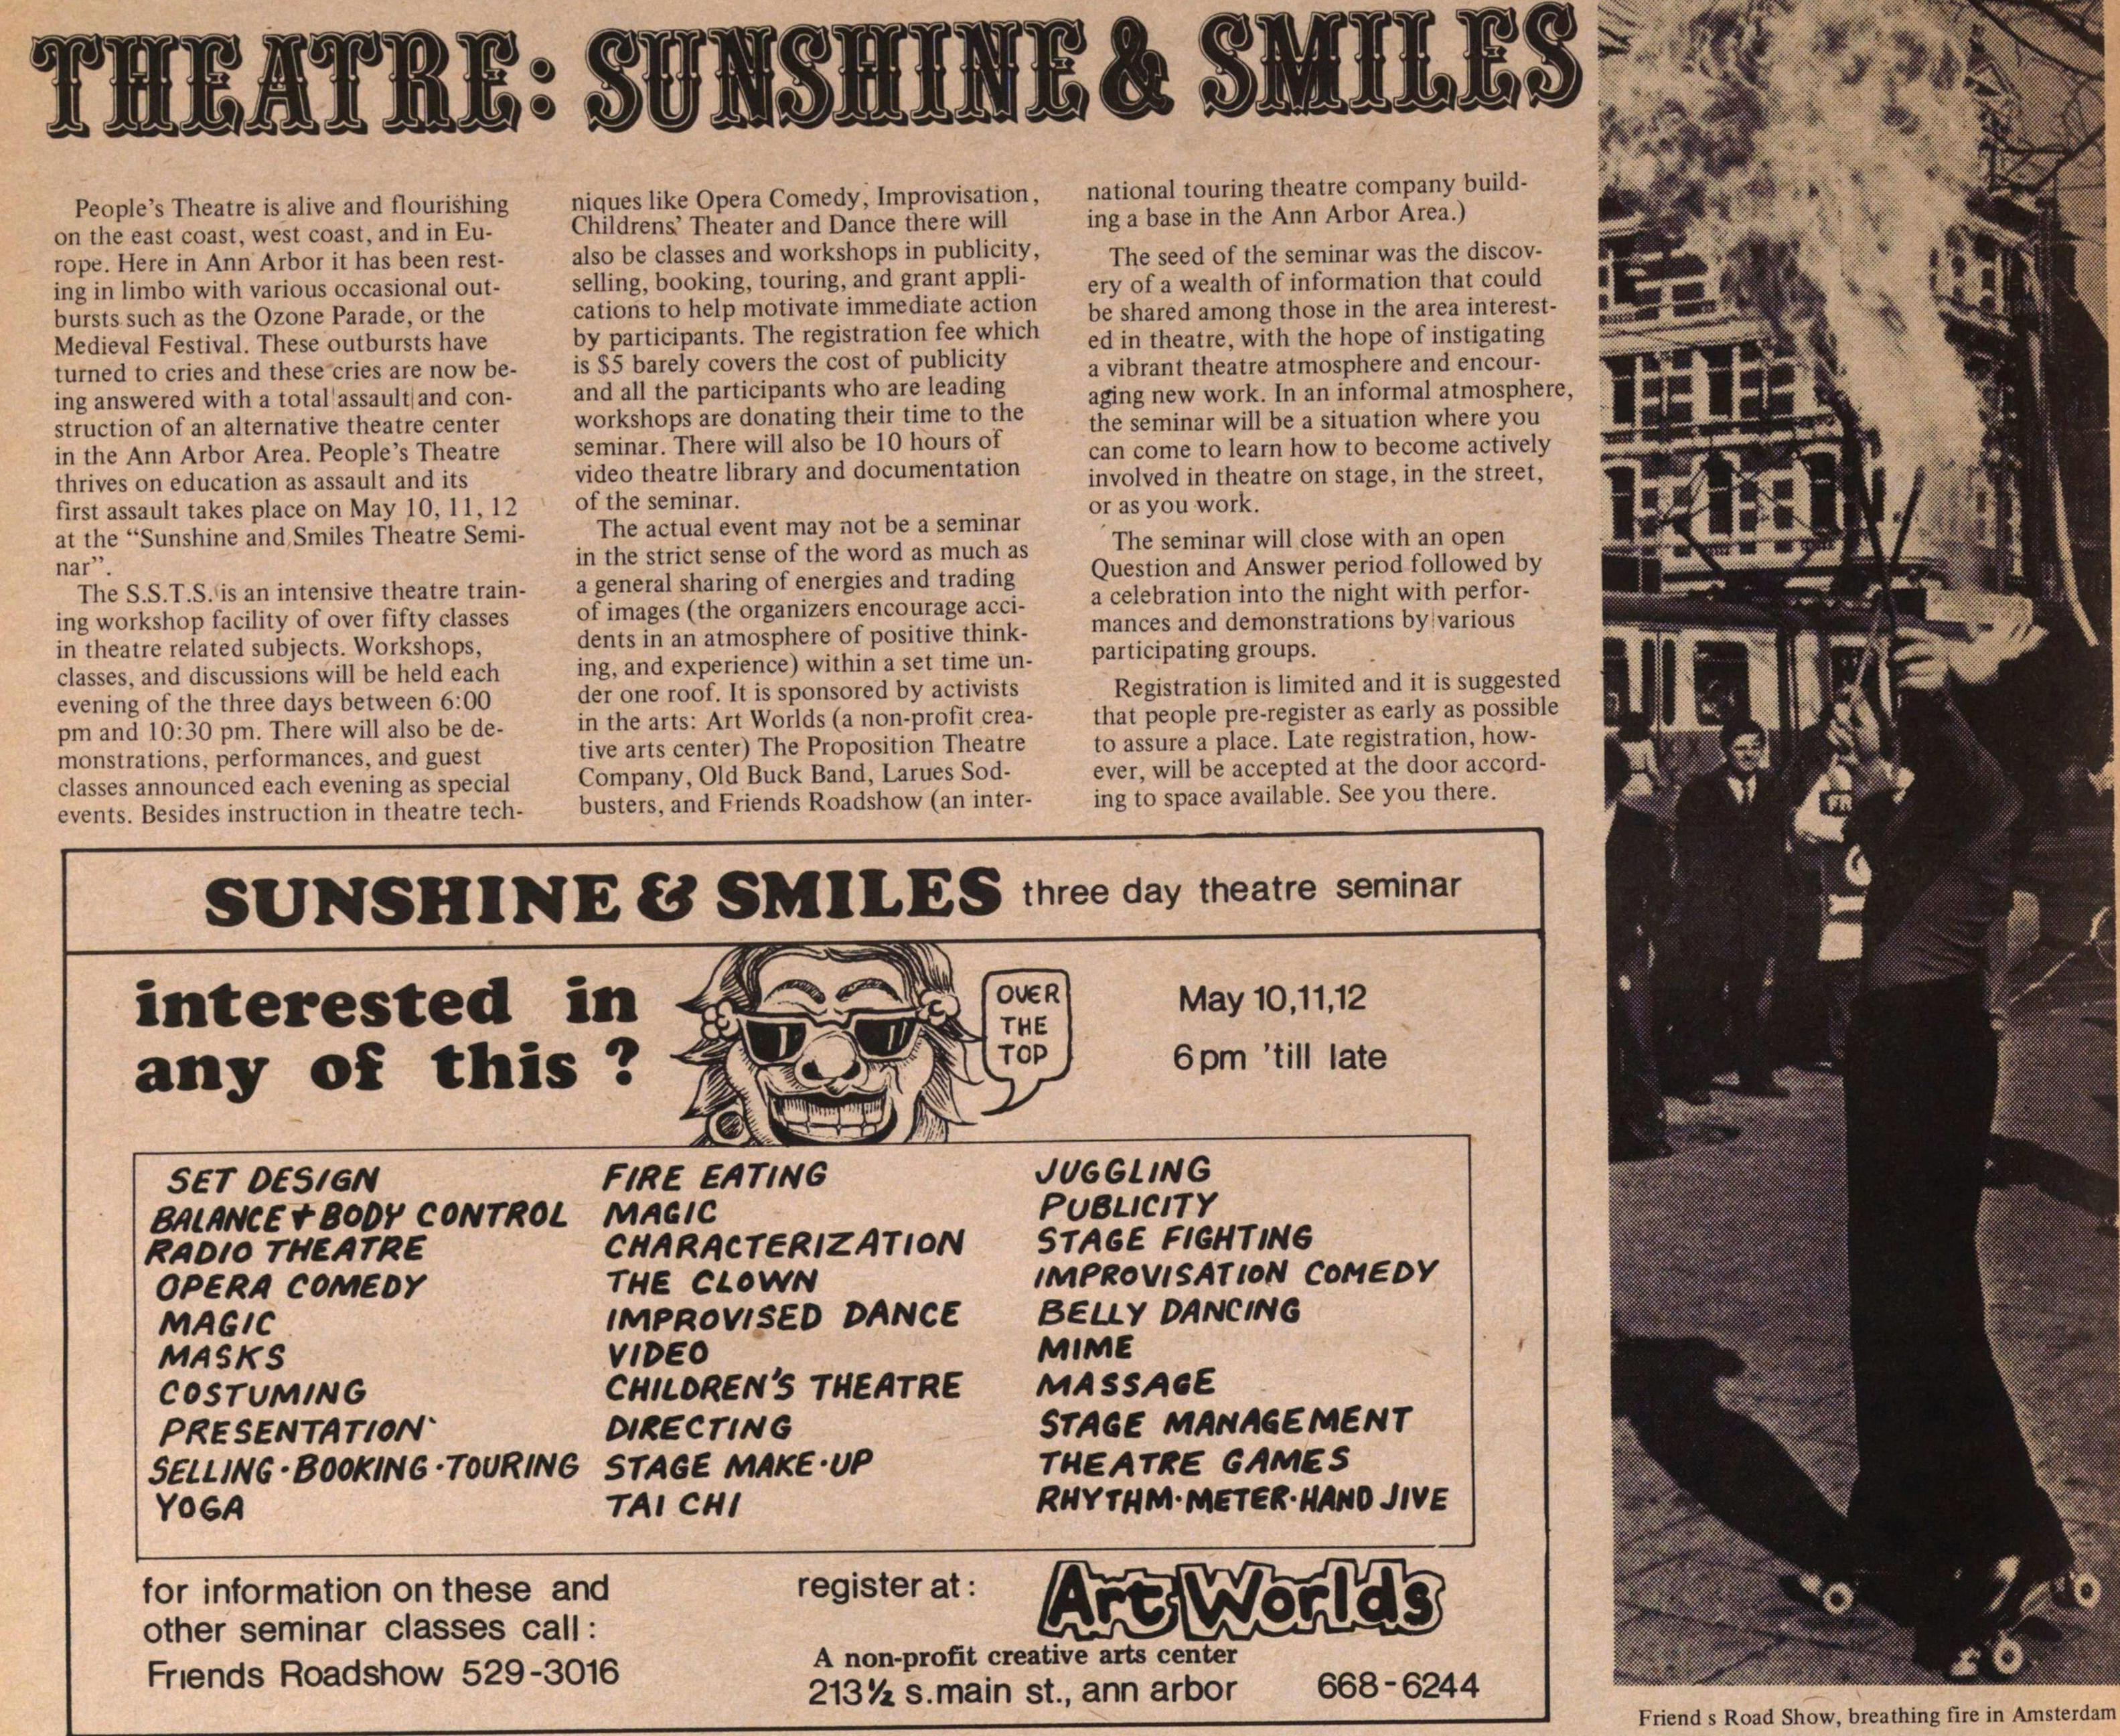 Theatre: Sunshine & Smiles image